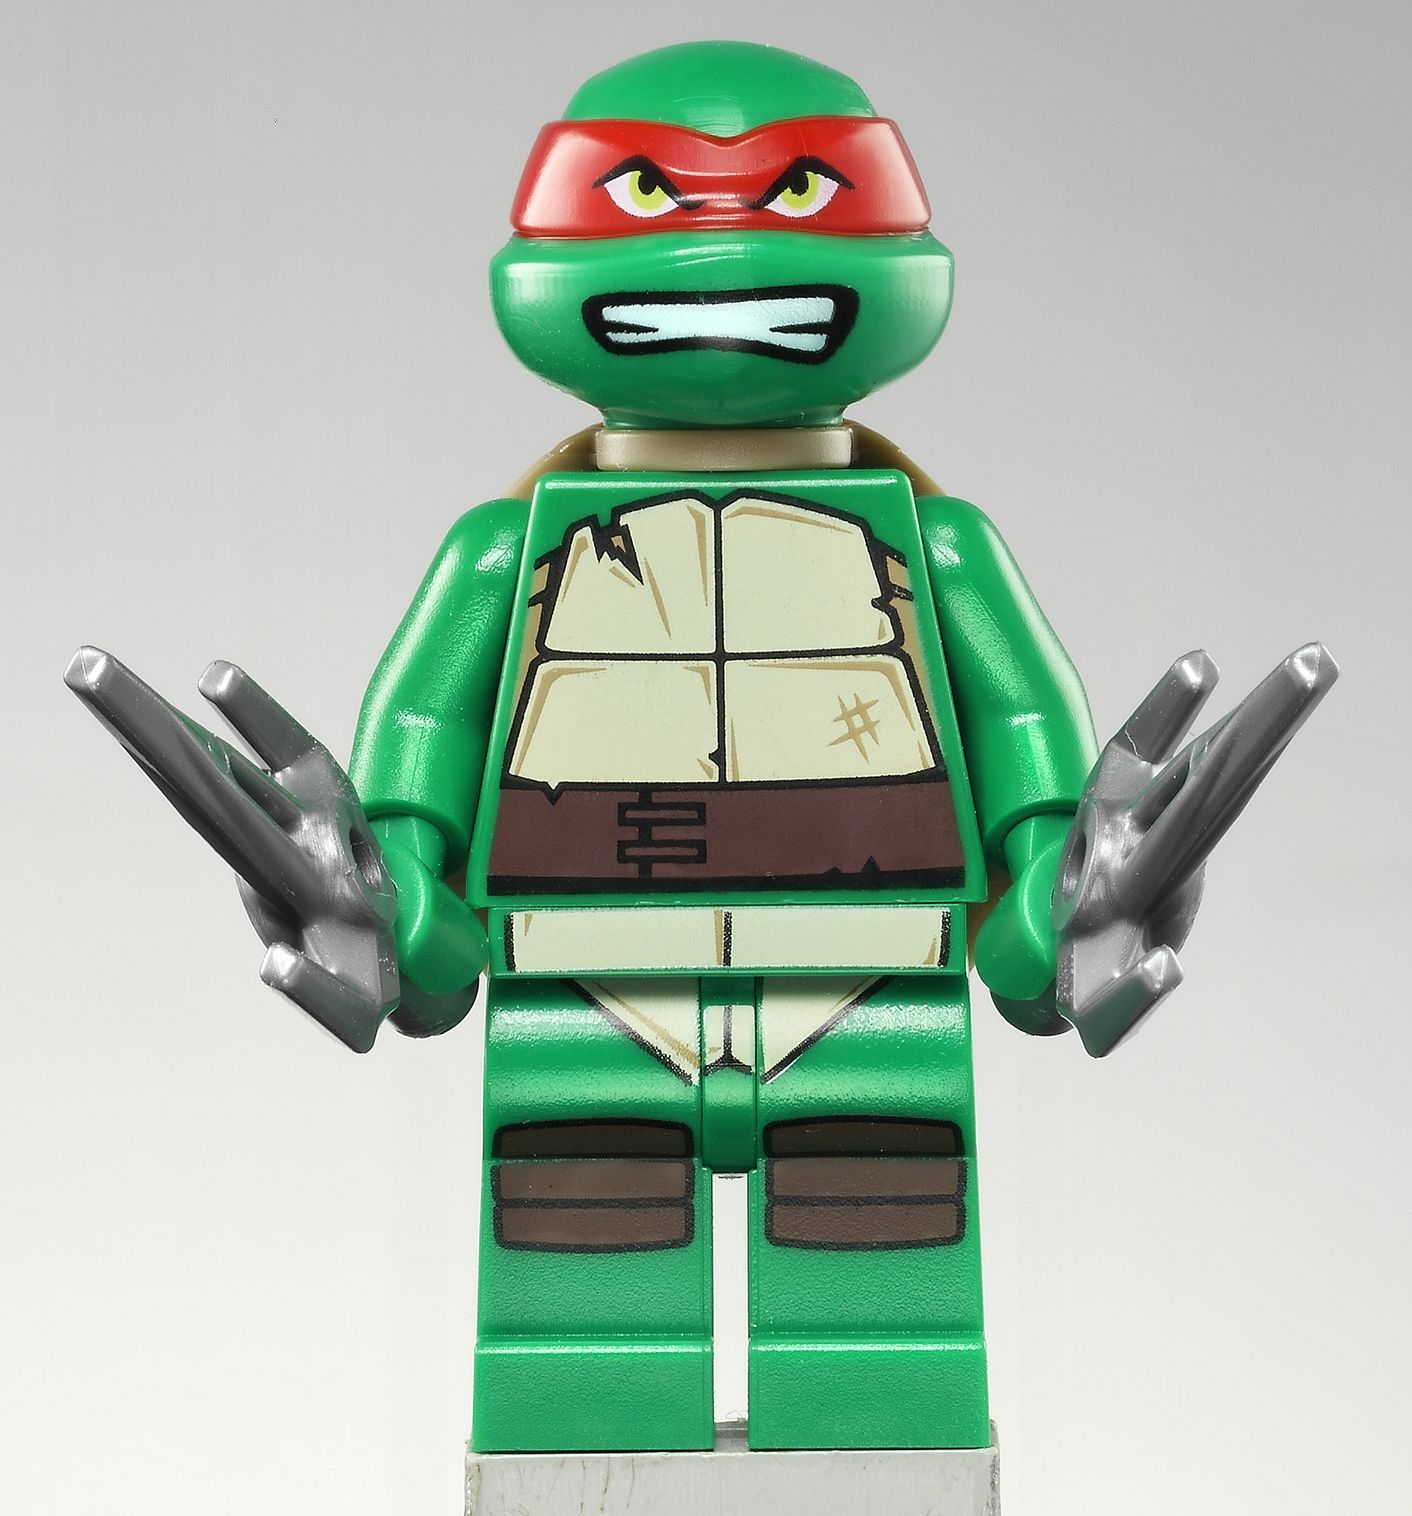 mutant ninja turtles 2013 ibrickcity 2 Lego 79104 Teenage Mutant Ninja